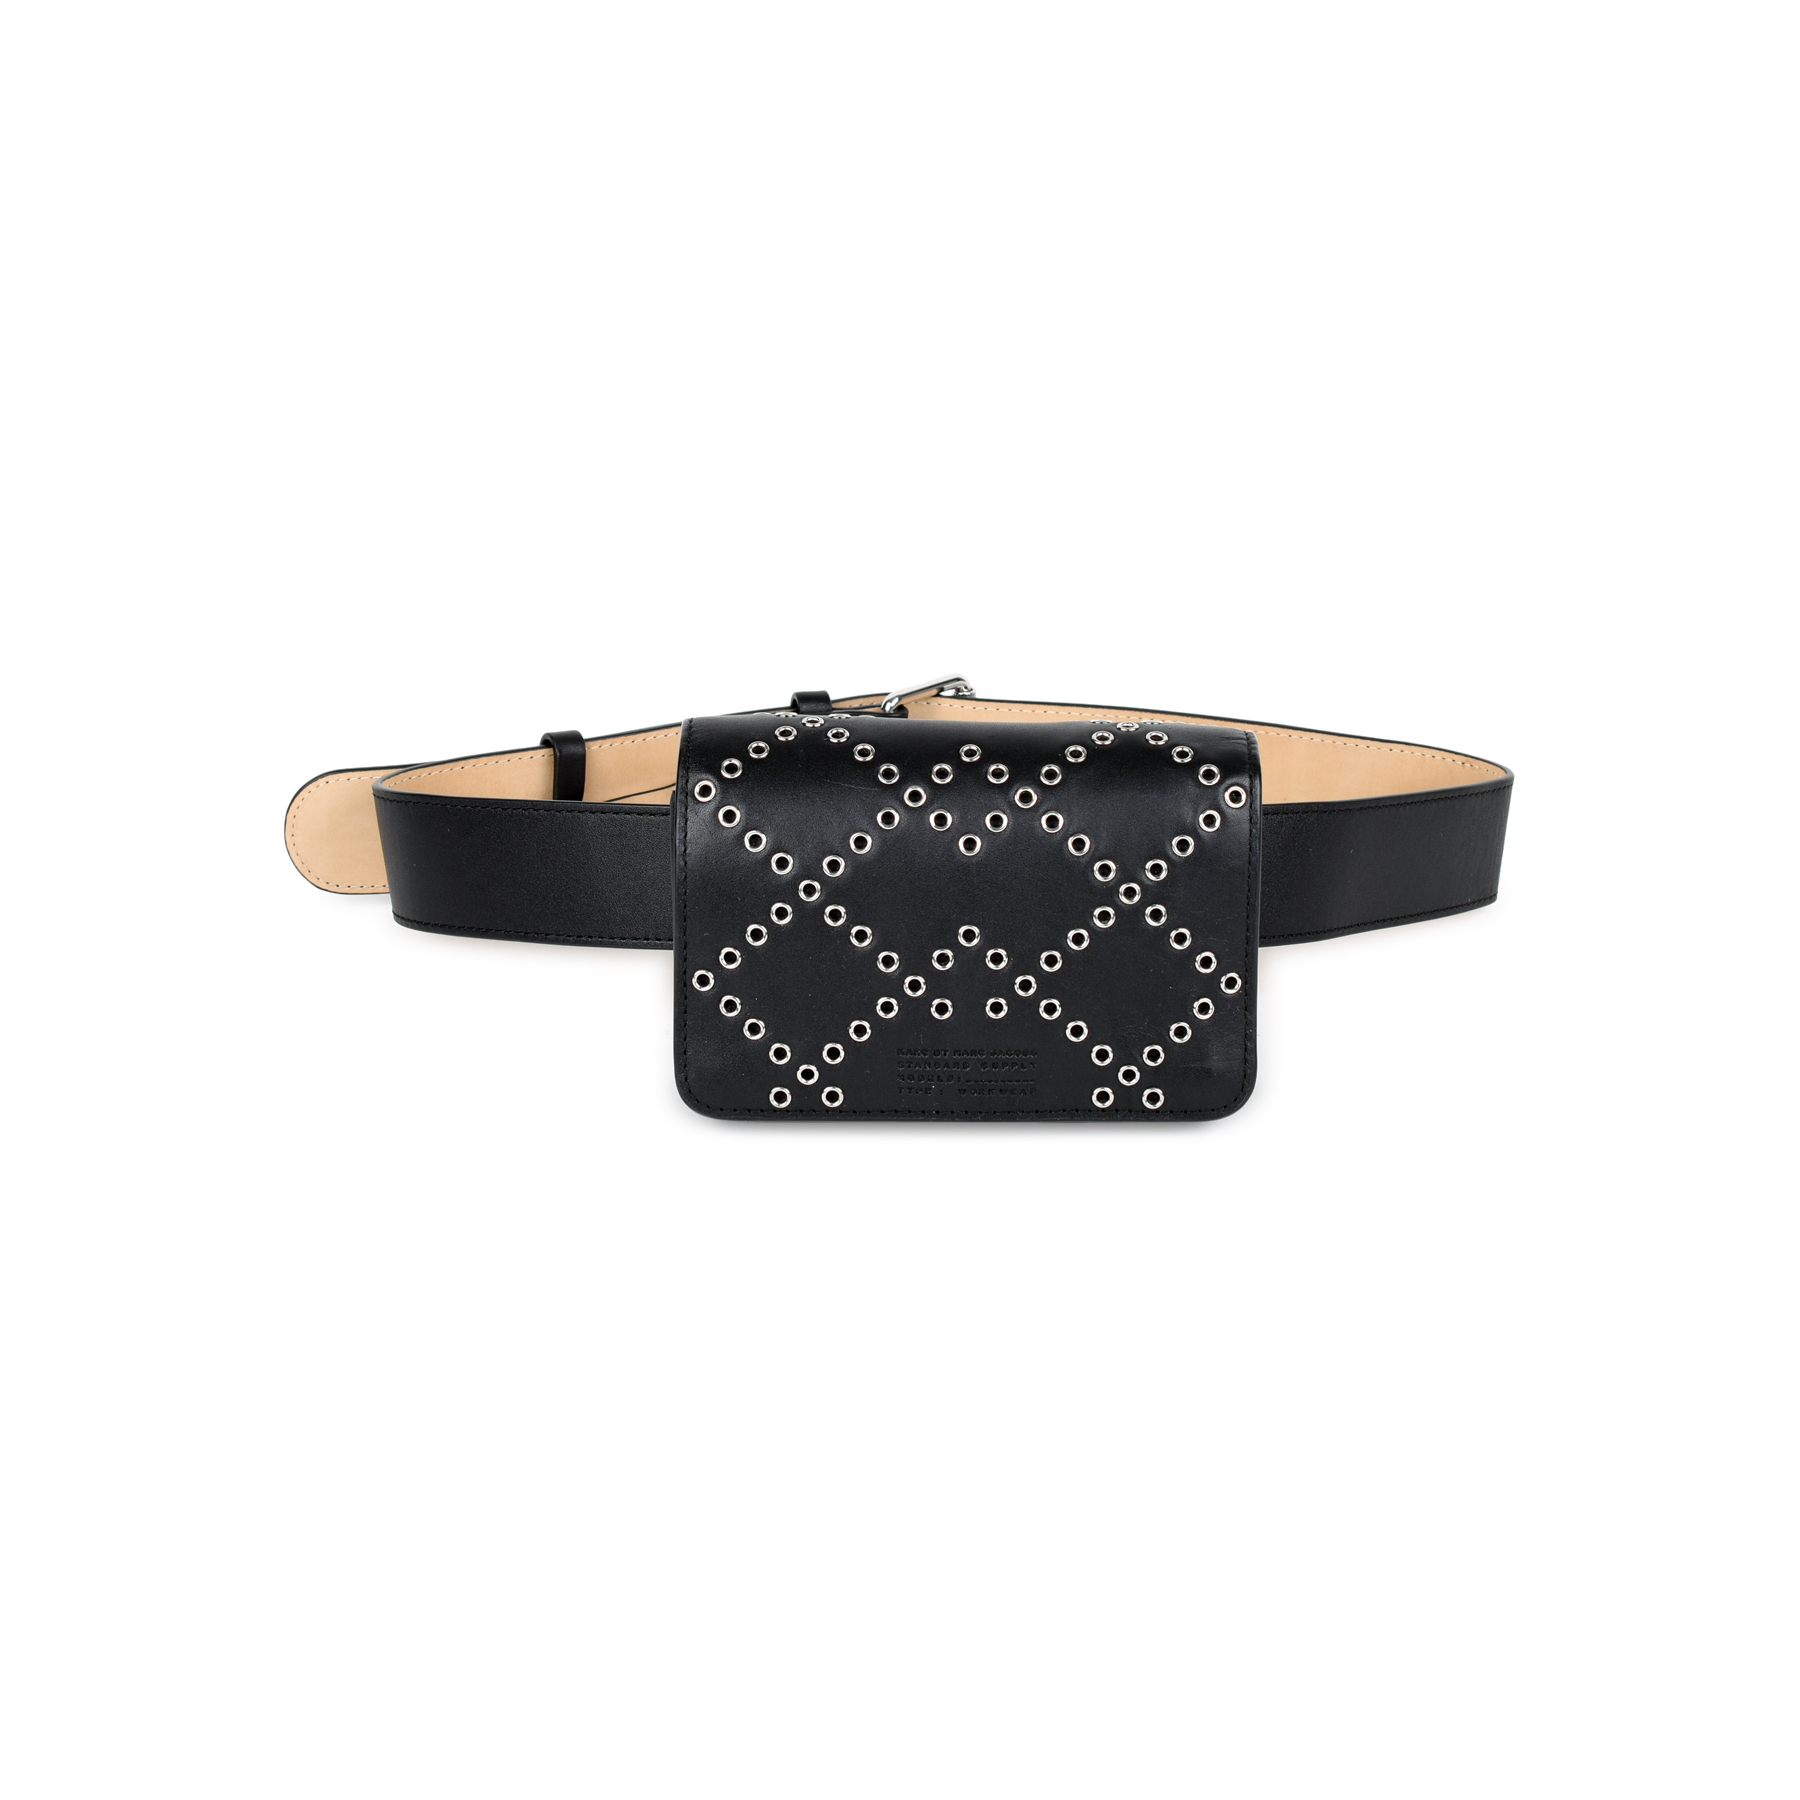 04483d774c66 Authentic Second Hand Marc by Marc Jacobs Quintana Cris Eyelet Belt Bag  (PSS-449-00006)